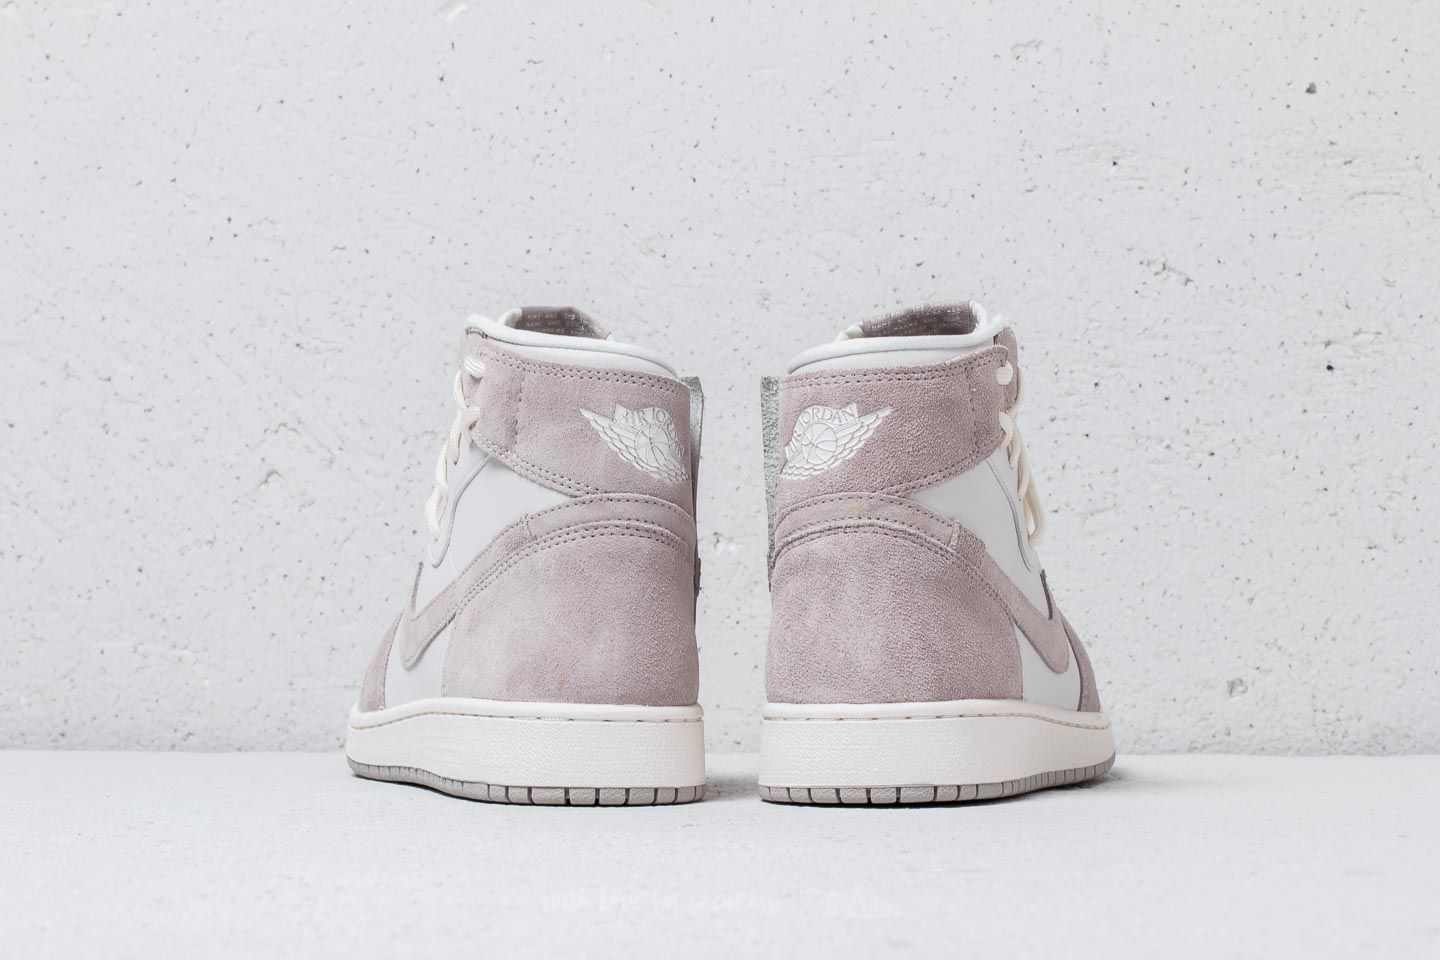 Air Jordan 1 Rebel XX WMNS Moon Particle  Moon Particle at a great price 143 749f5be704e